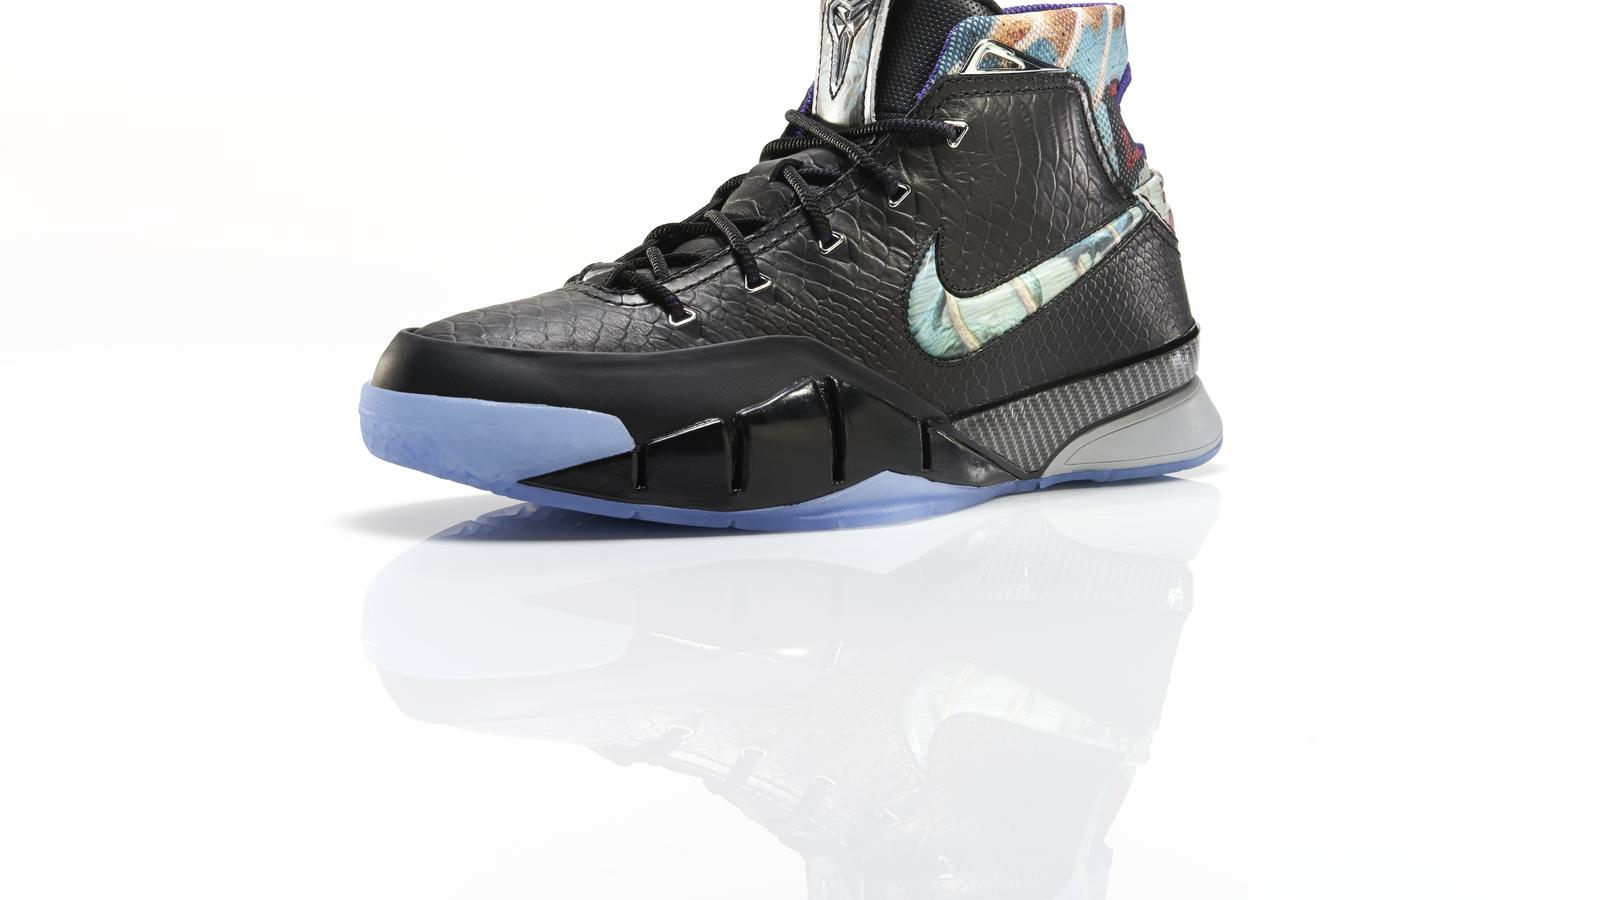 online store 7e835 4c5d8 ... INTRODUCING THE KOBE PRELUDE PACK WHERE DESIGN MEETS ART - Nike News ...